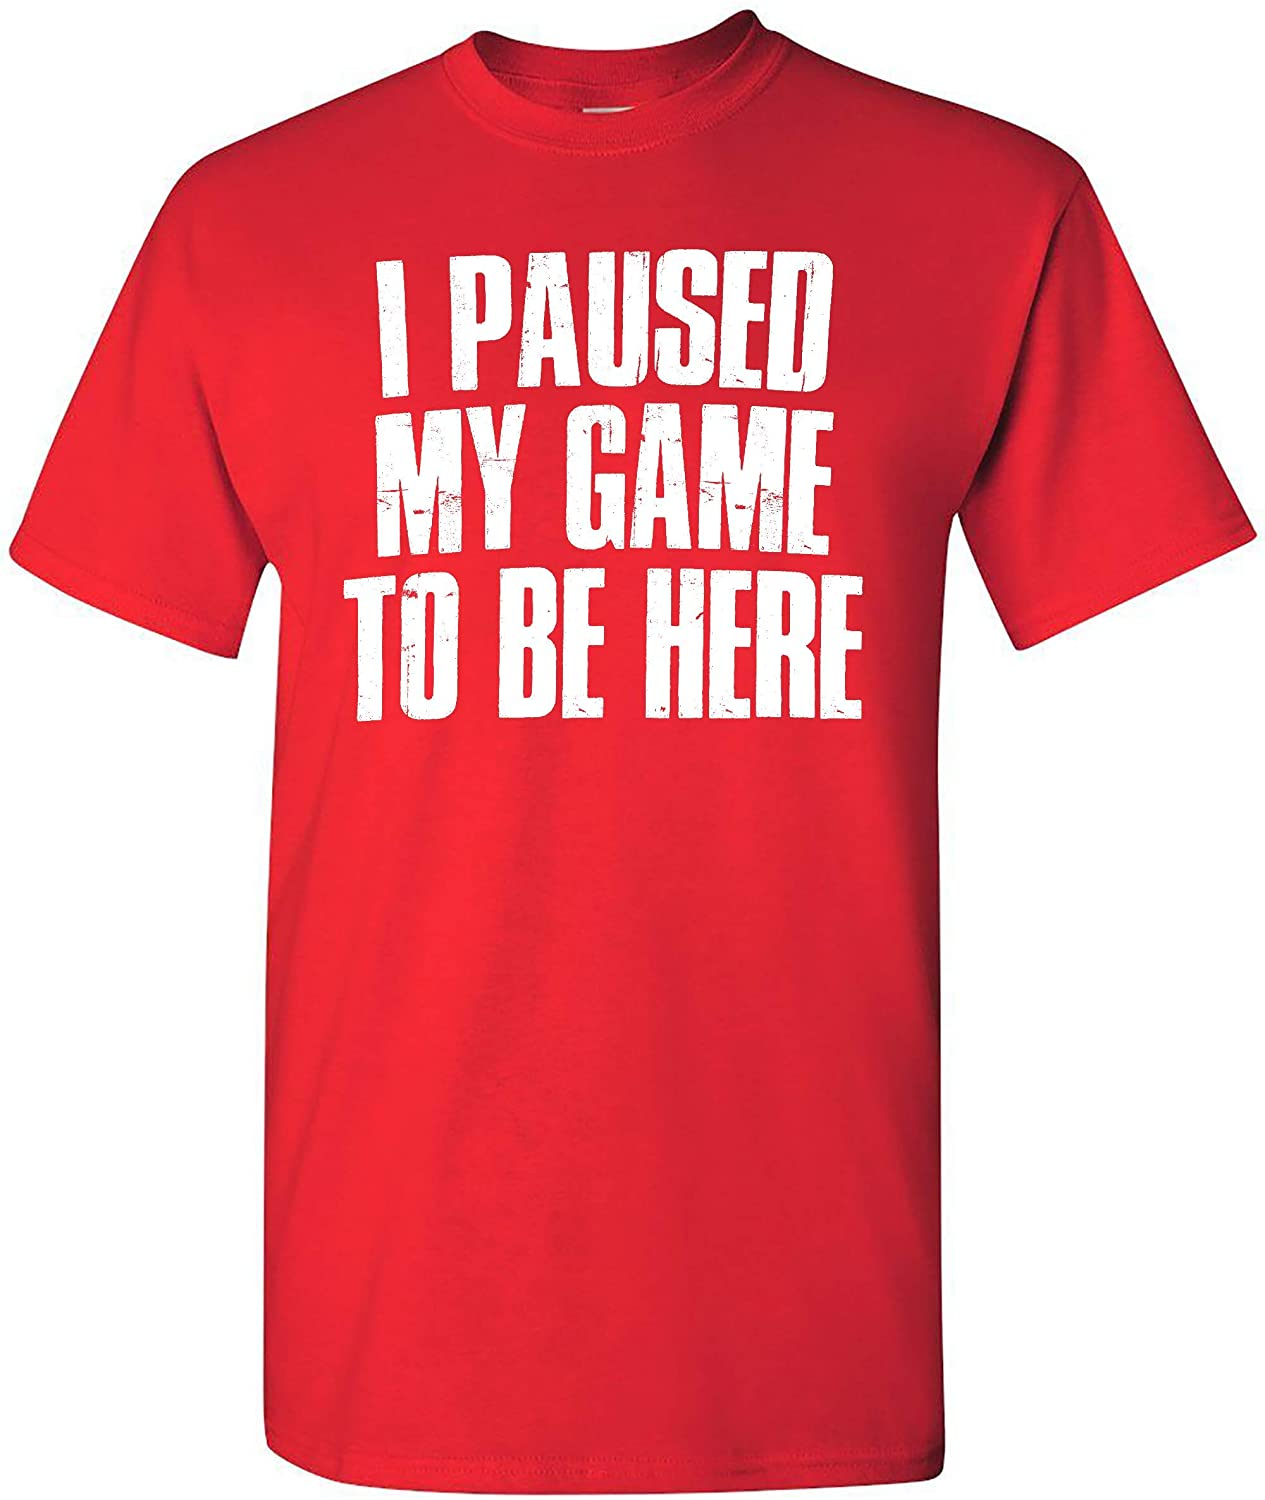 I Paused My Game to Be Here Funny Sarcastic Video Gamer Humor for Men Women Graphic T-Shirt